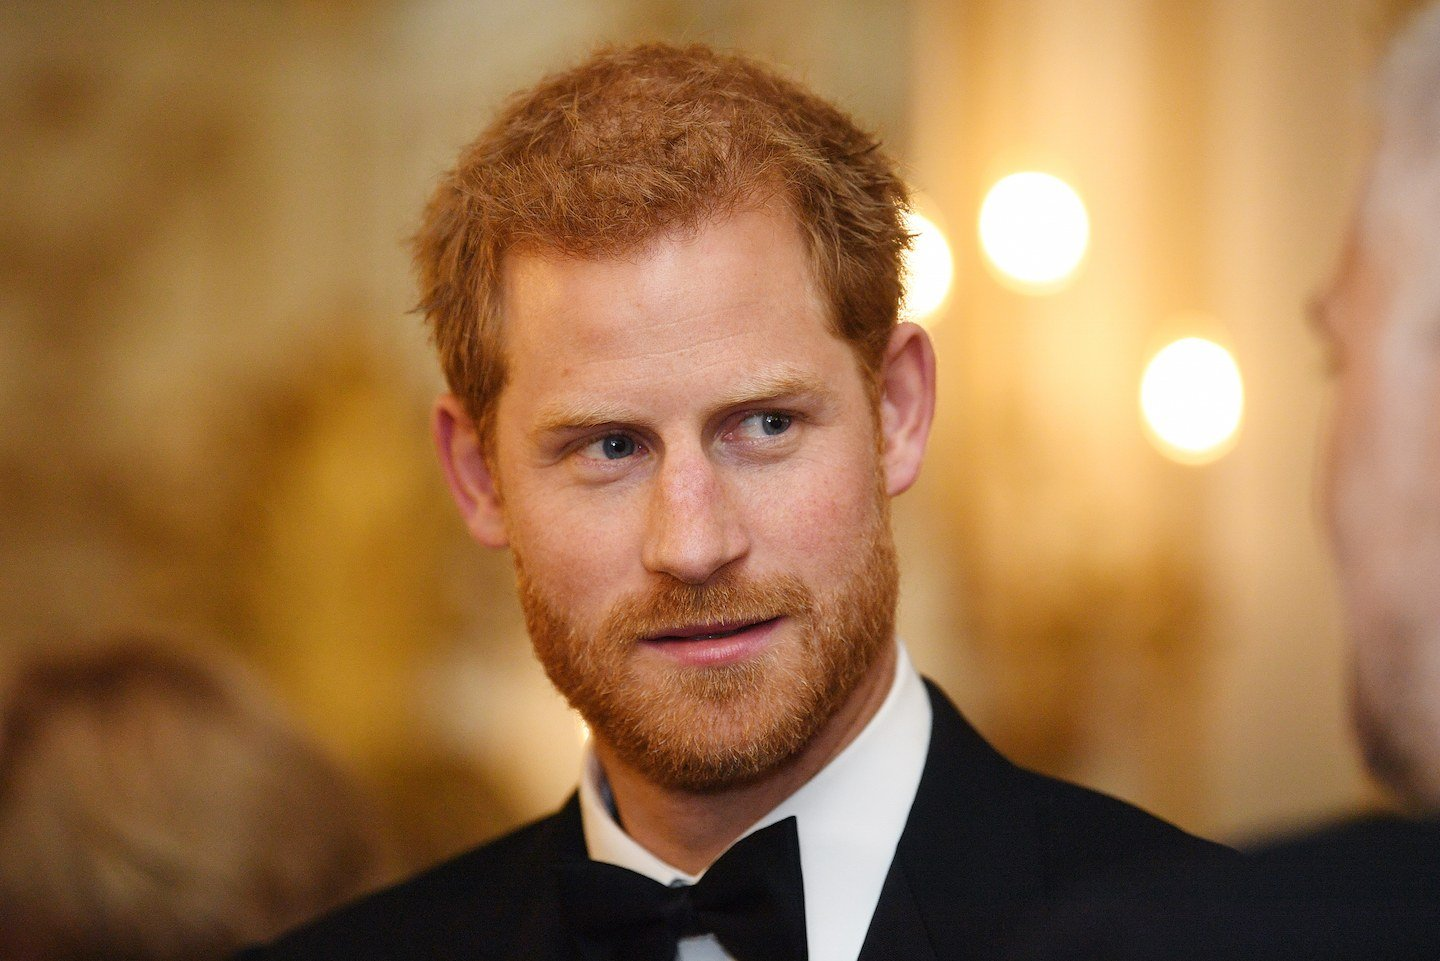 prince harry beard poll - Prince Harry And Meghan Markle Are Engaged To Be Married